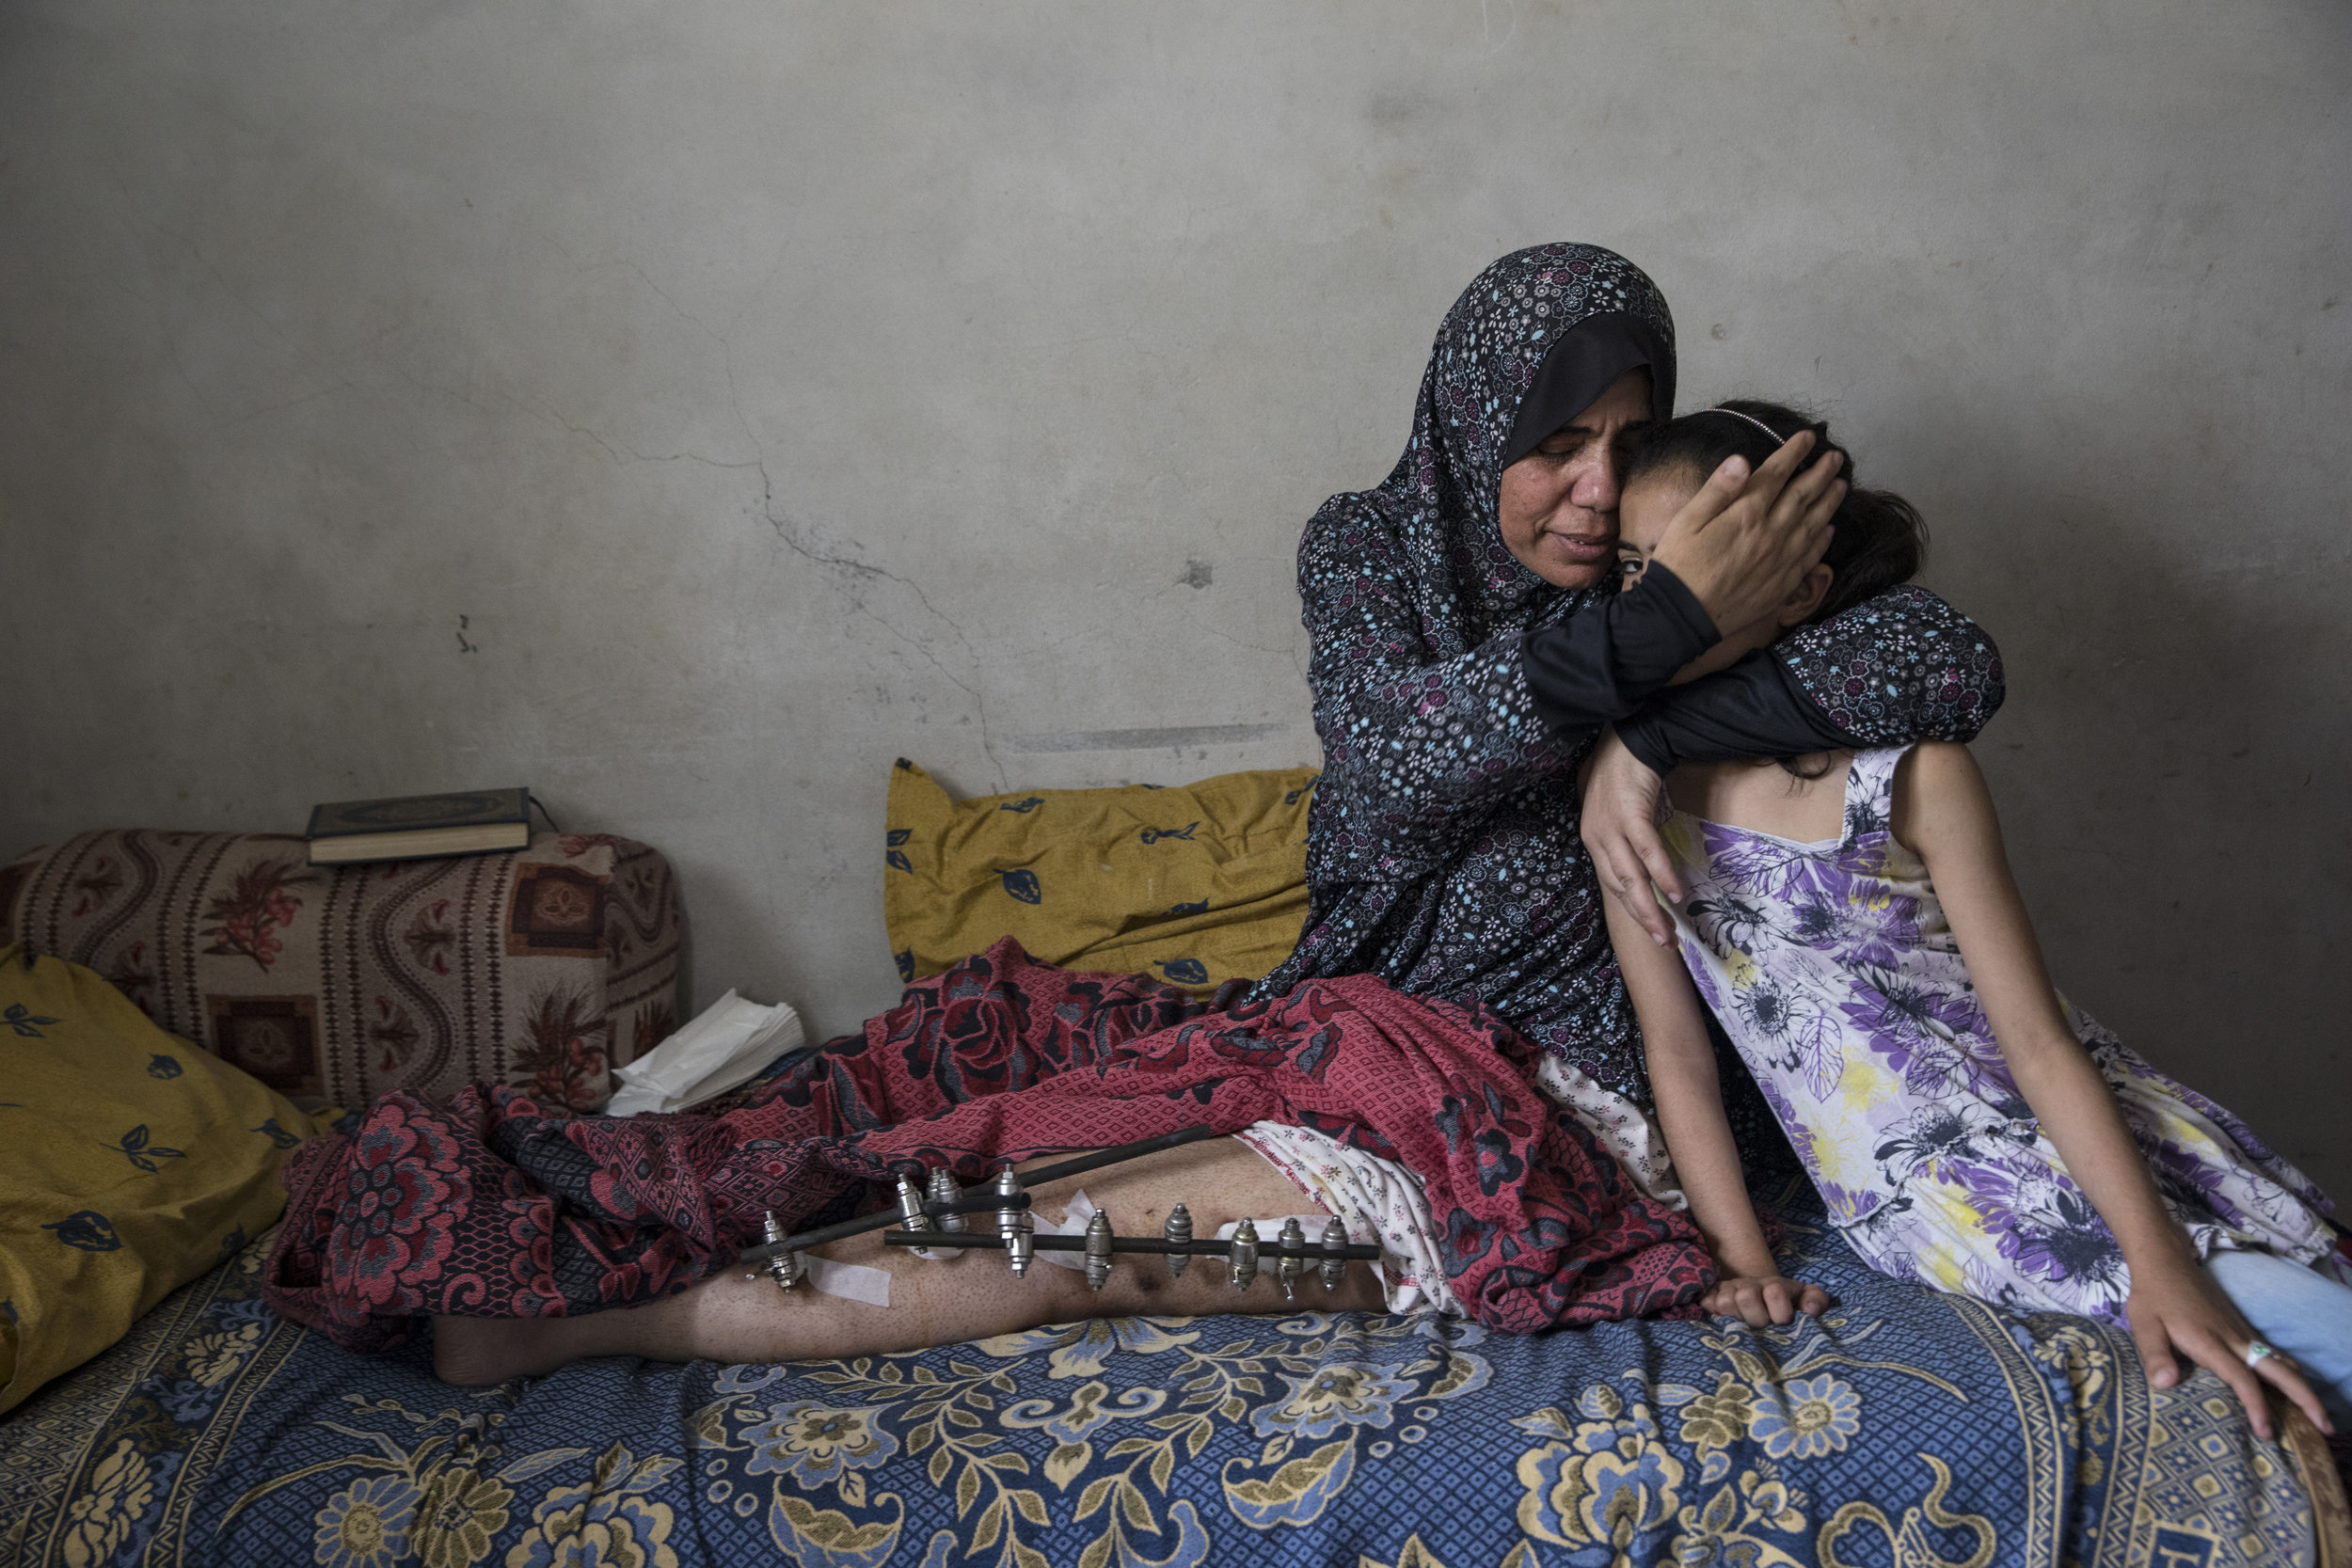 PAULA BRONSTEIN  www.paulaphoto.com  |  @pbbphoto   Kefah Al-Ajrami, 47, holds her daughter Zamzam Al-Ajrami, 9, who was crying after seeing her mother in pain on May 22,2018 in Gaza City. Kefah is a mother of seven, she was shot in her left leg with an exploding bullet causing extensive injury to her leg. She went to the protests on March 30th along with her children and husband, when the Israeli military (IDF) started using new weaponry, explosive bullets meant to shatter bones and destroy veins and arteries.